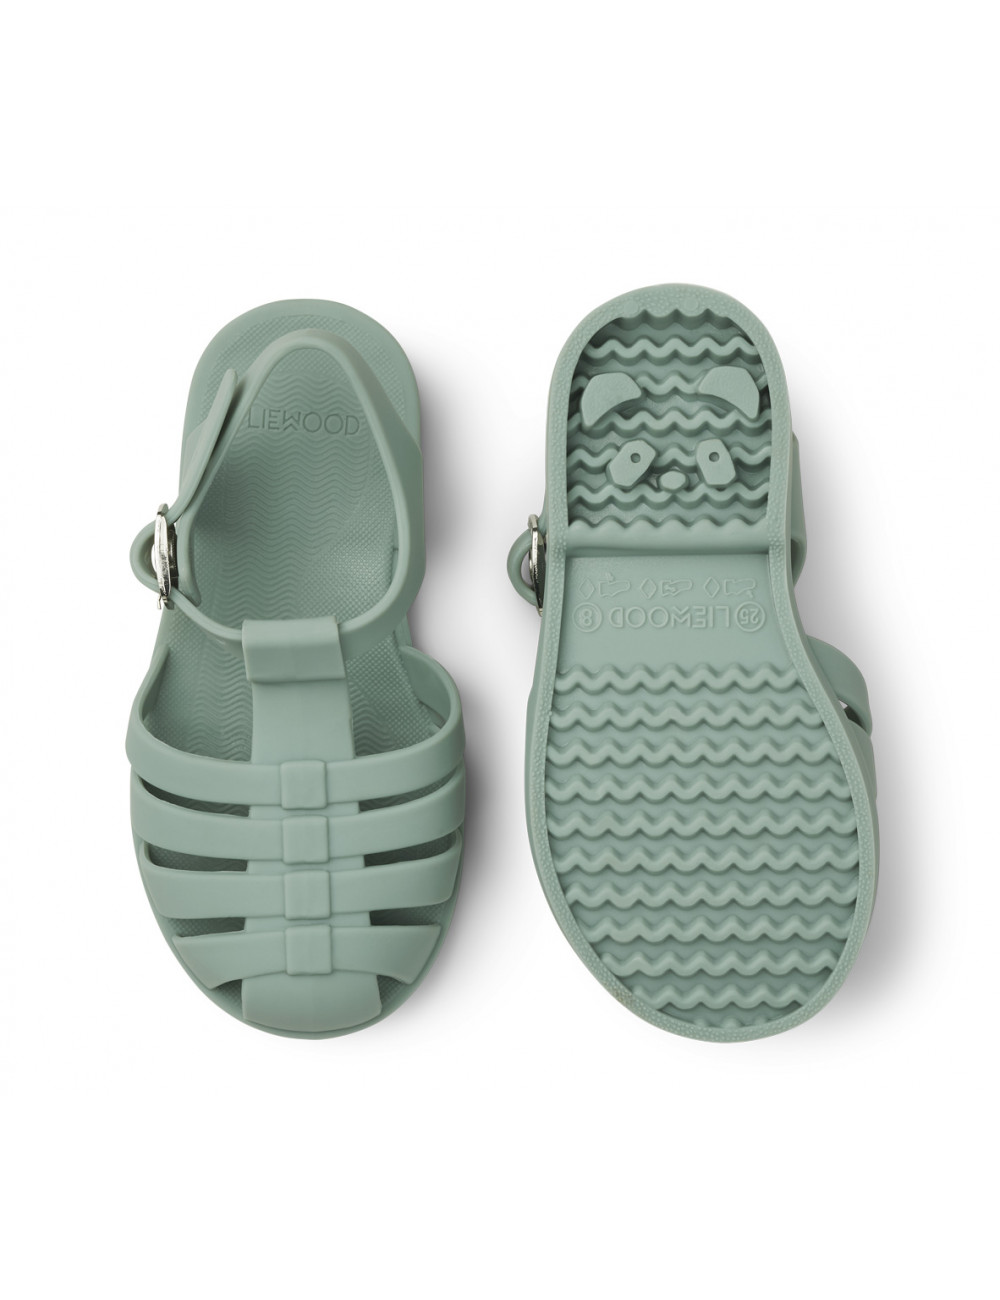 Watersandalen Bre | peppermint